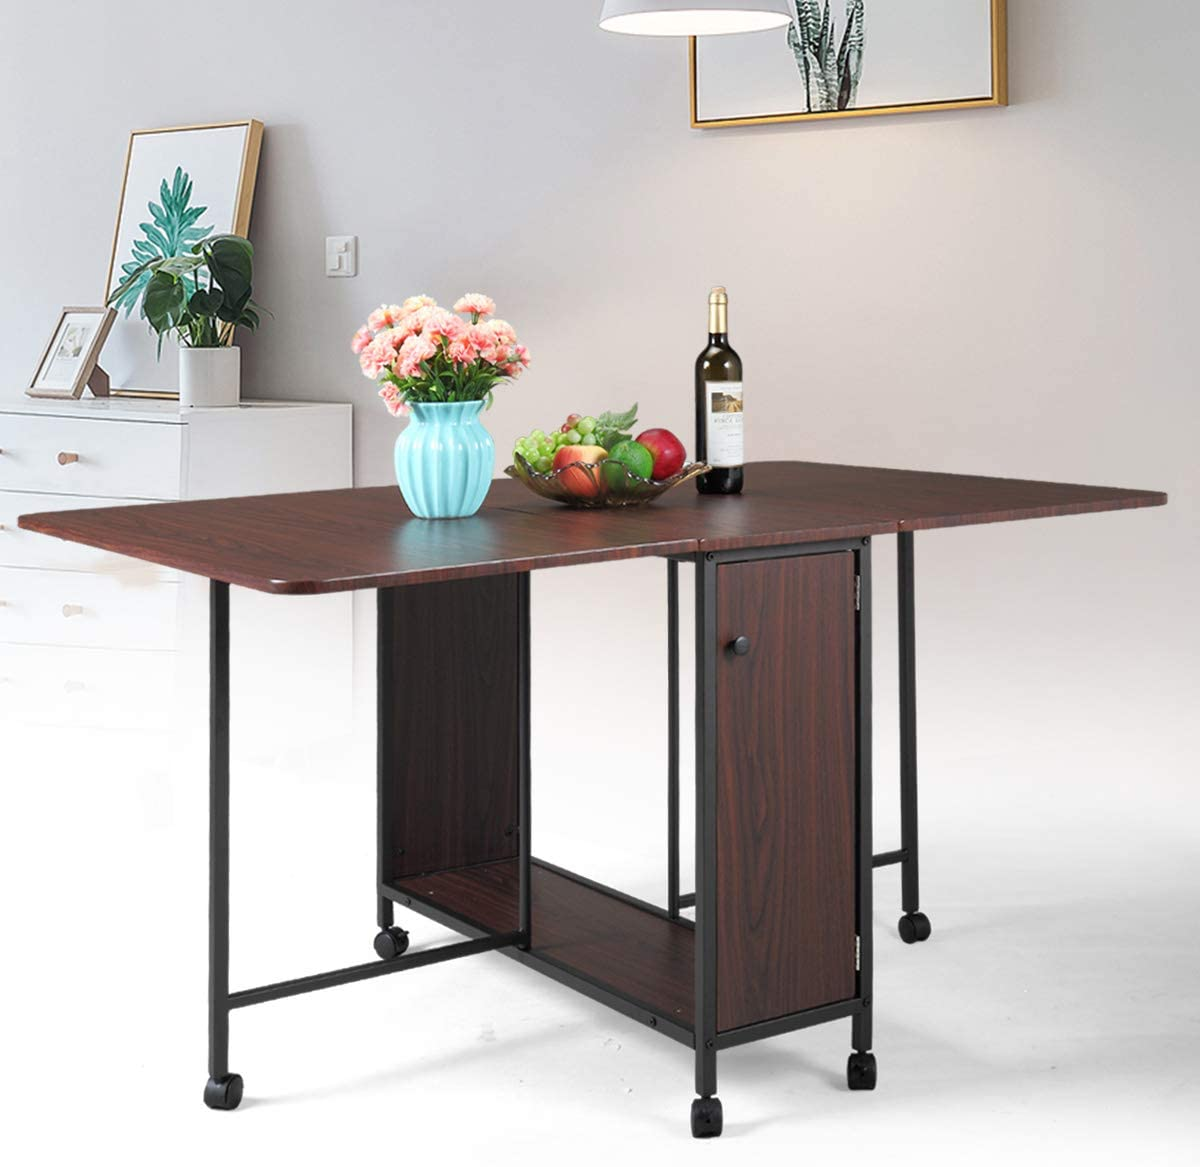 JAXPETY Movable Folding Dining Table, Drop Leaf Extendable Versatile Table Space Saving, Expandable Kitchen Table with Large Storage and 6 Wheels